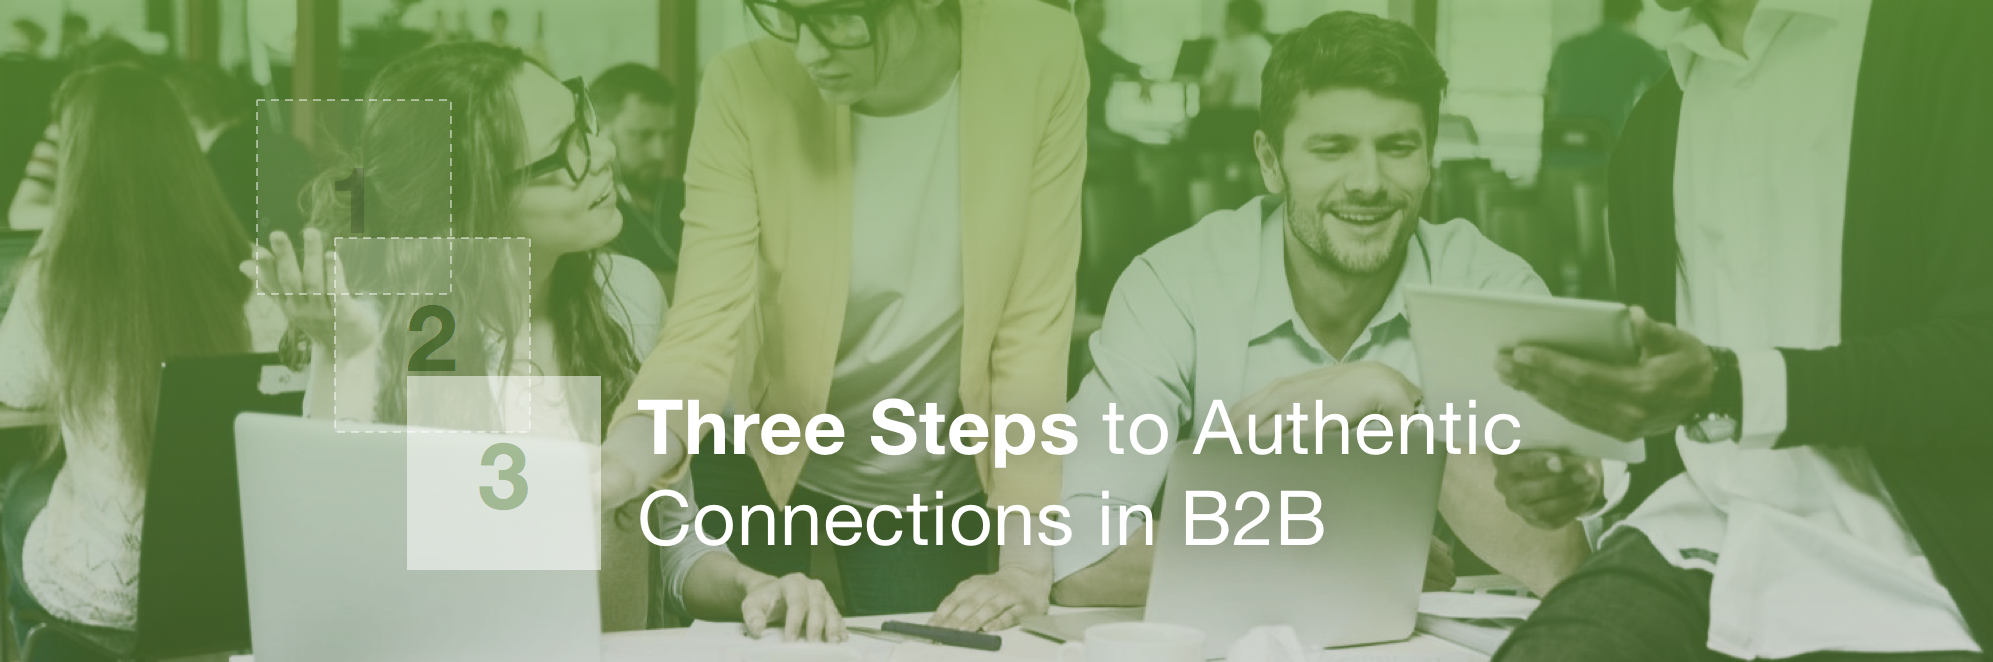 Three Steps to Authentic Connection in B2B